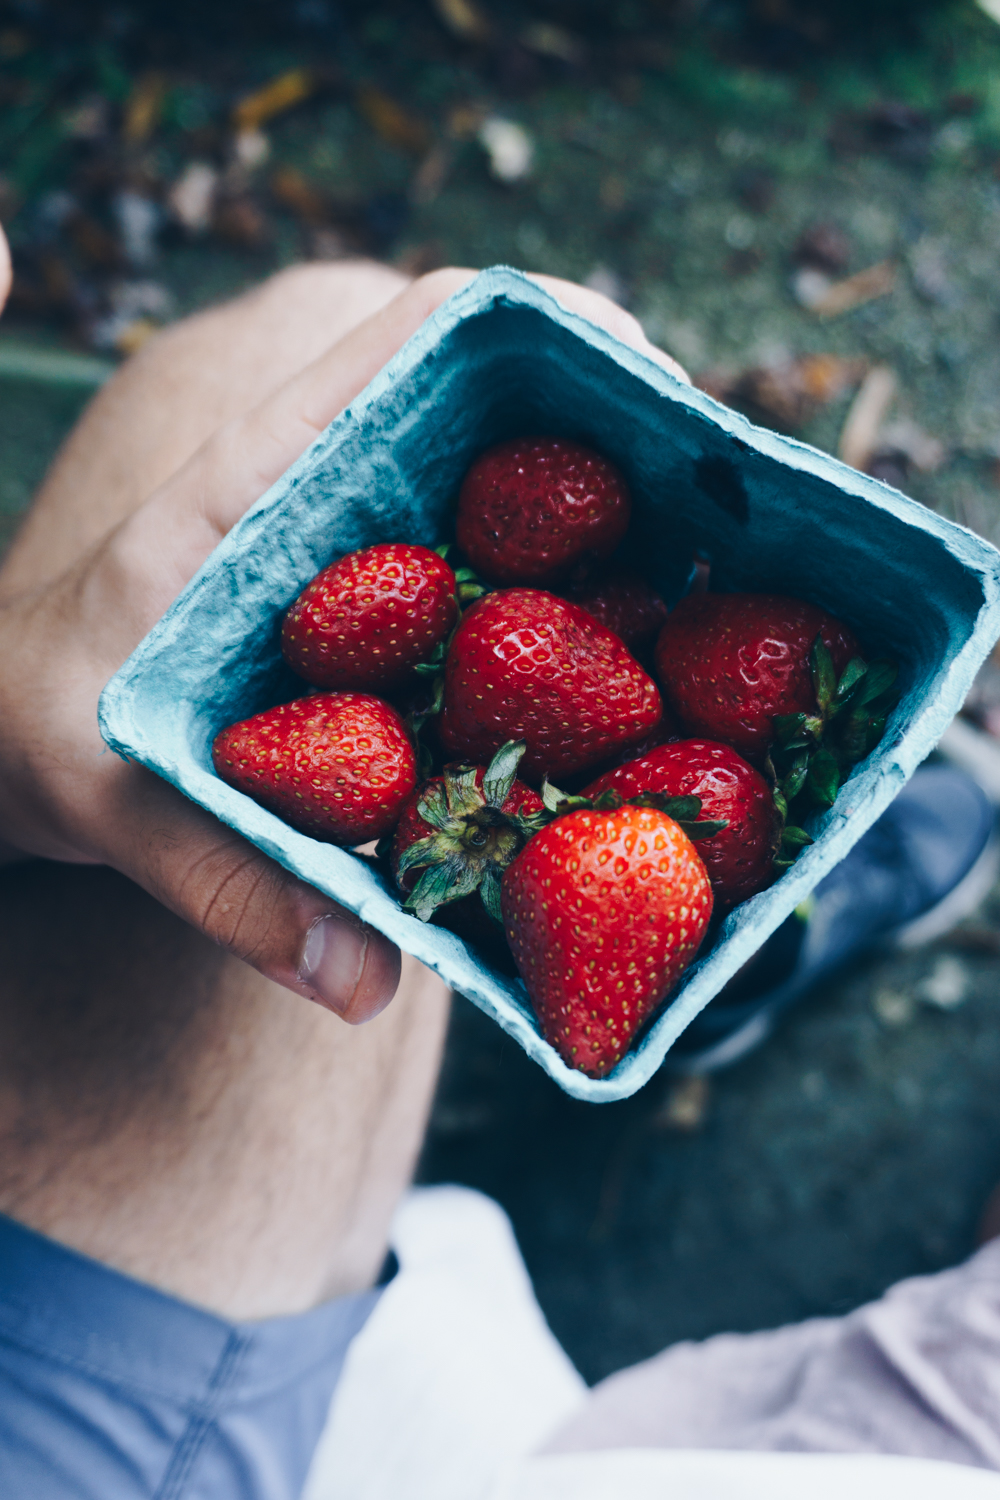 fall picnic blue ridge mountains adventures strawberries rgdaily blog